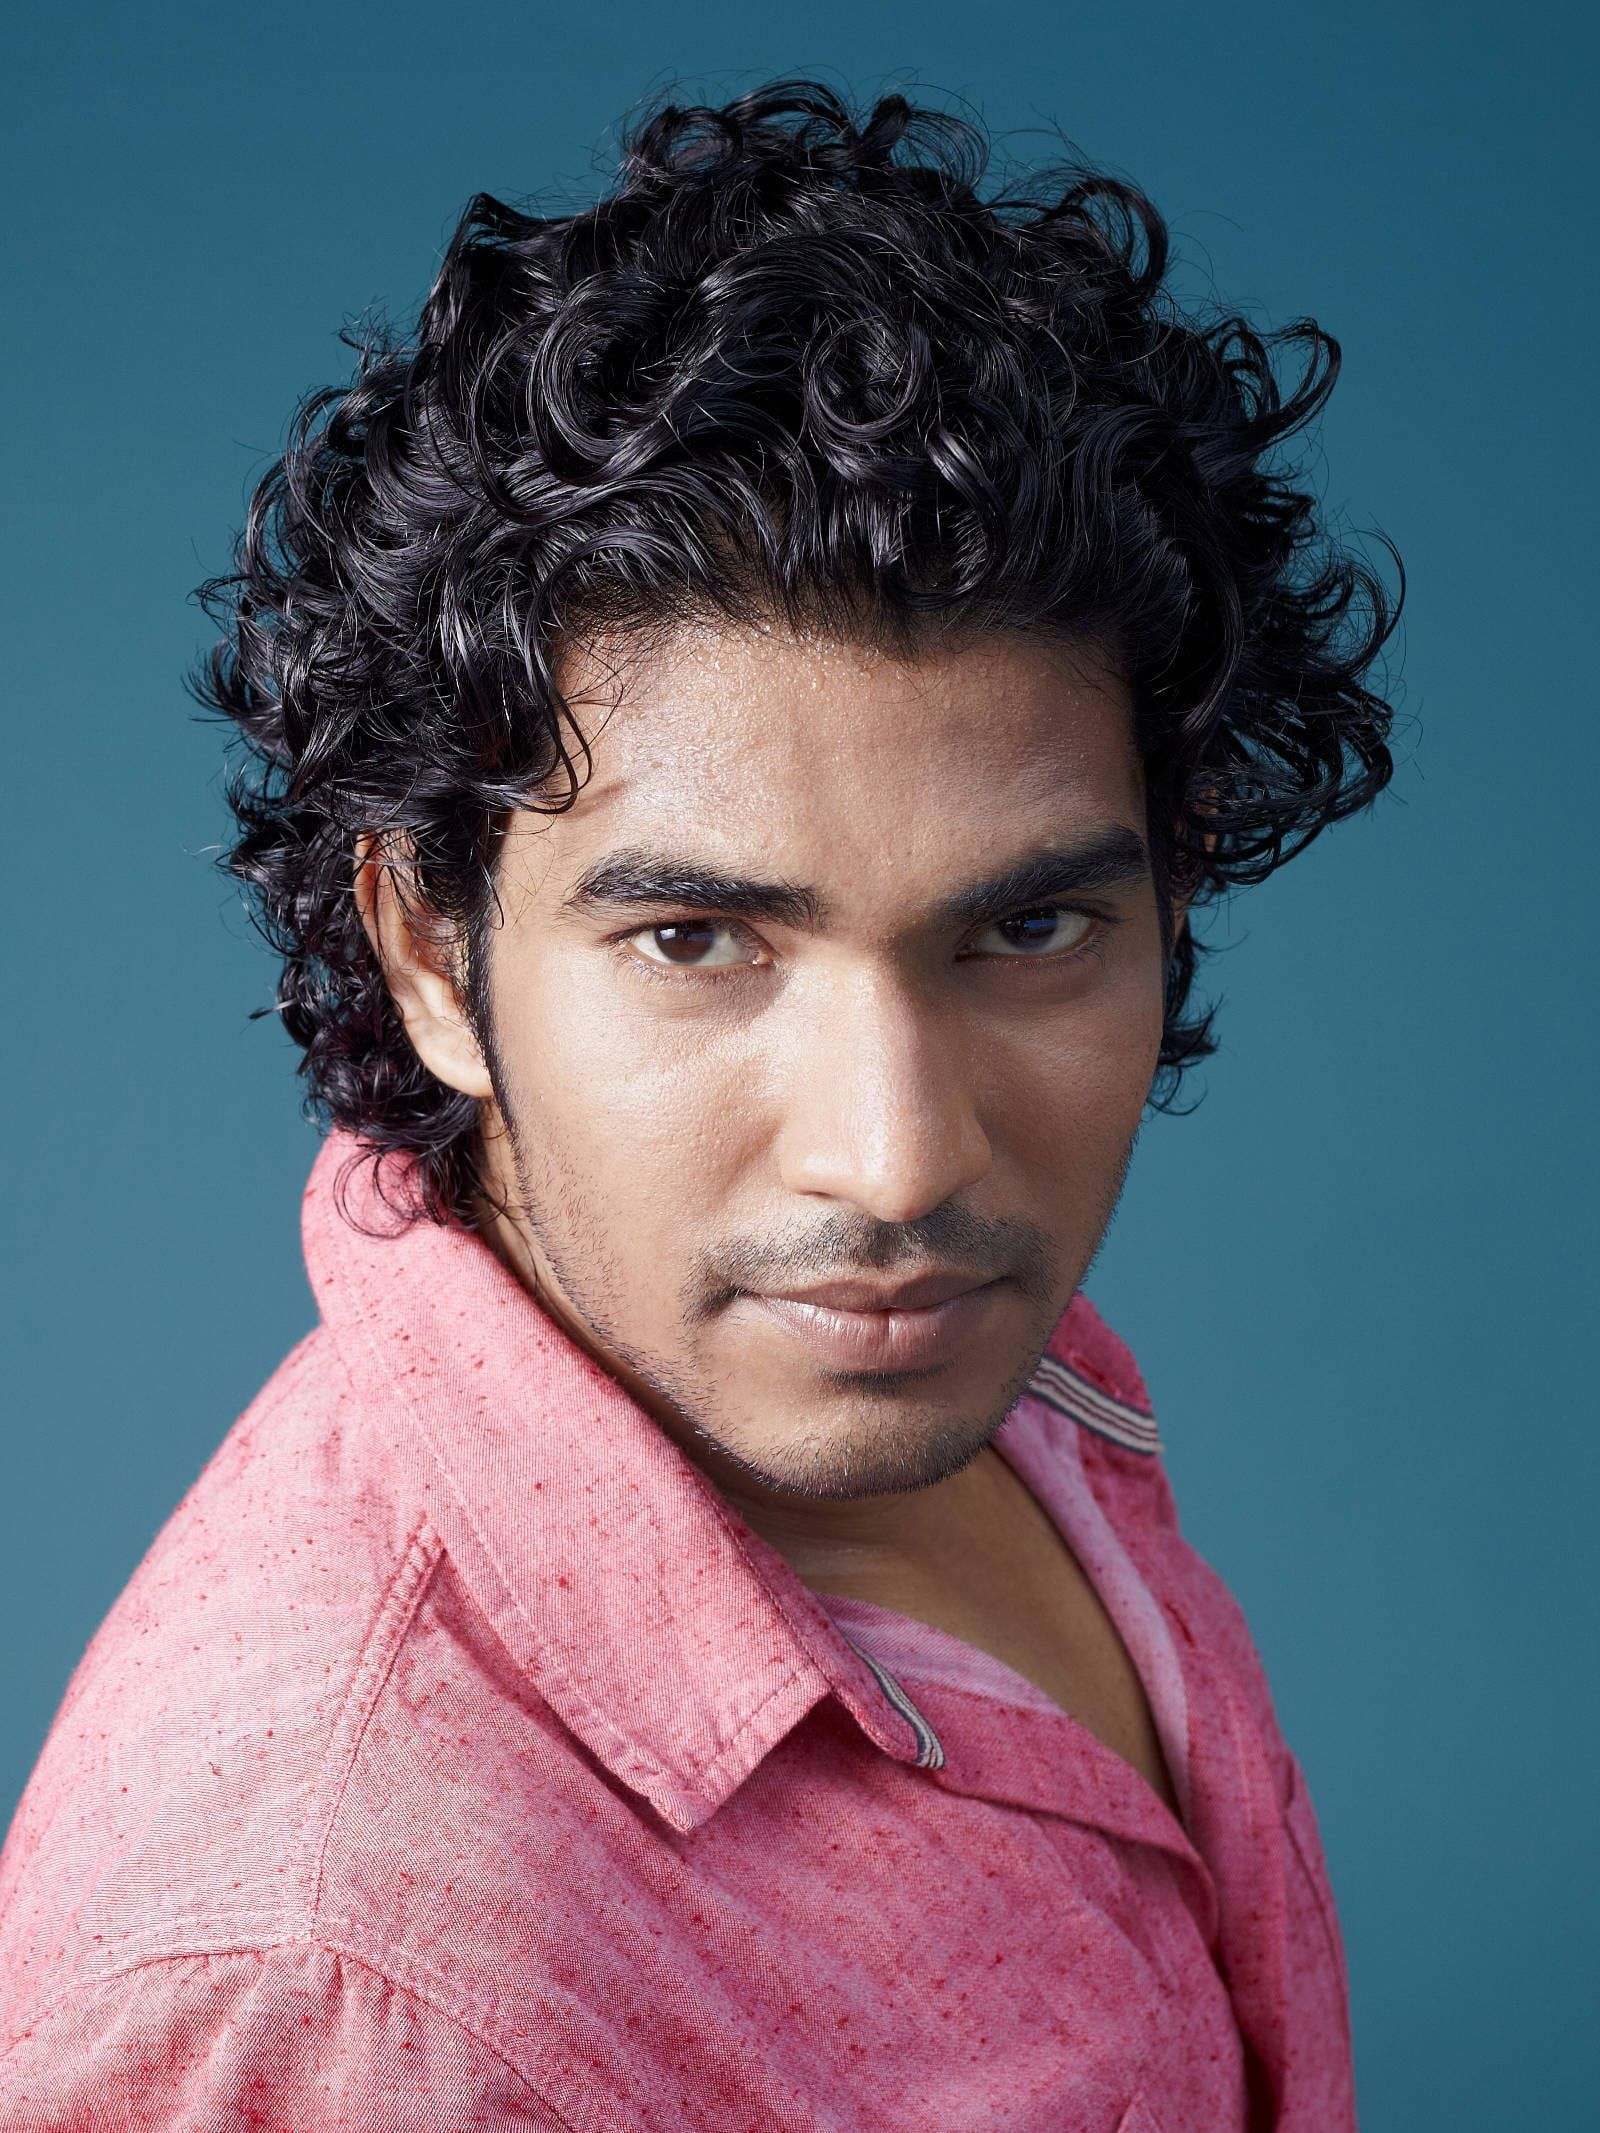 40 Modern Men's Hairstyles for Curly Hair (That Will ...